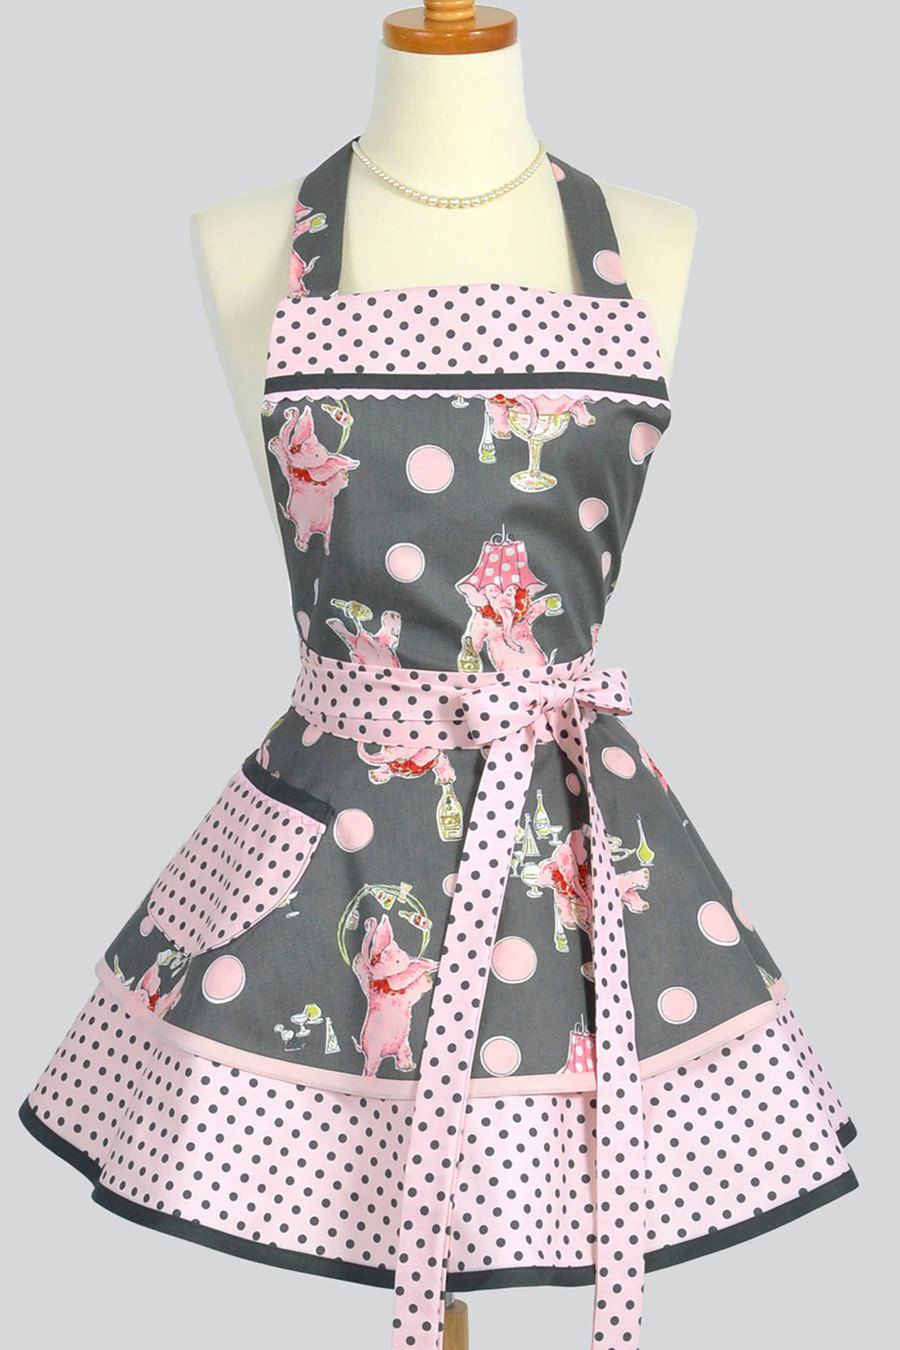 Apron Ruffled Retro Apron Handmade Flirty Full Womens Apron In Pink Grey Dots Featuring Pink